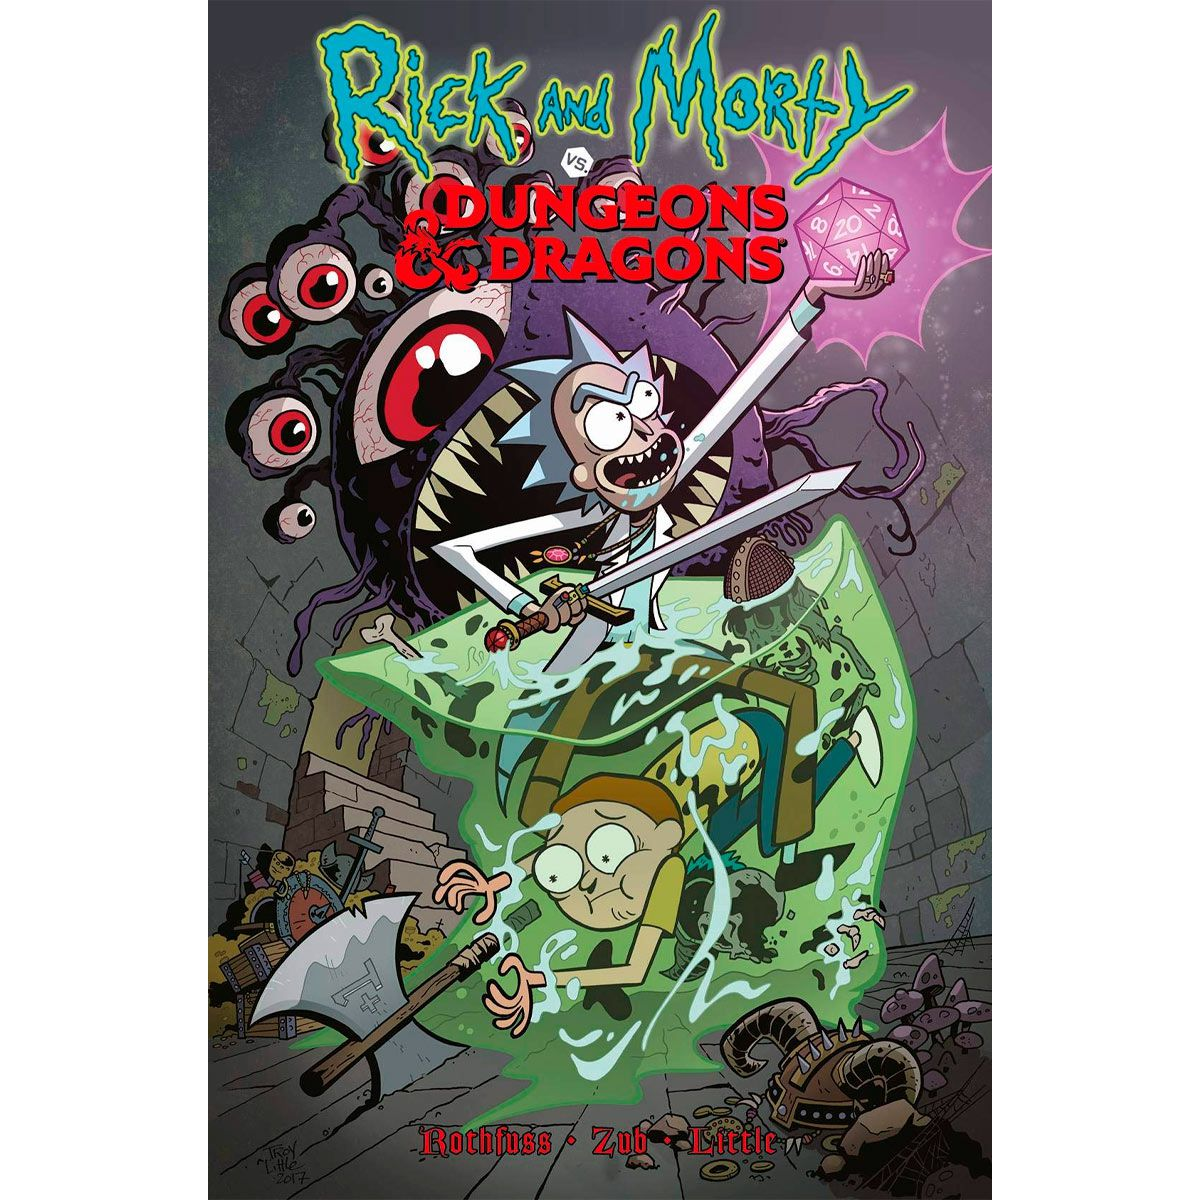 Rick and Morty vs Dungeon and Dragons